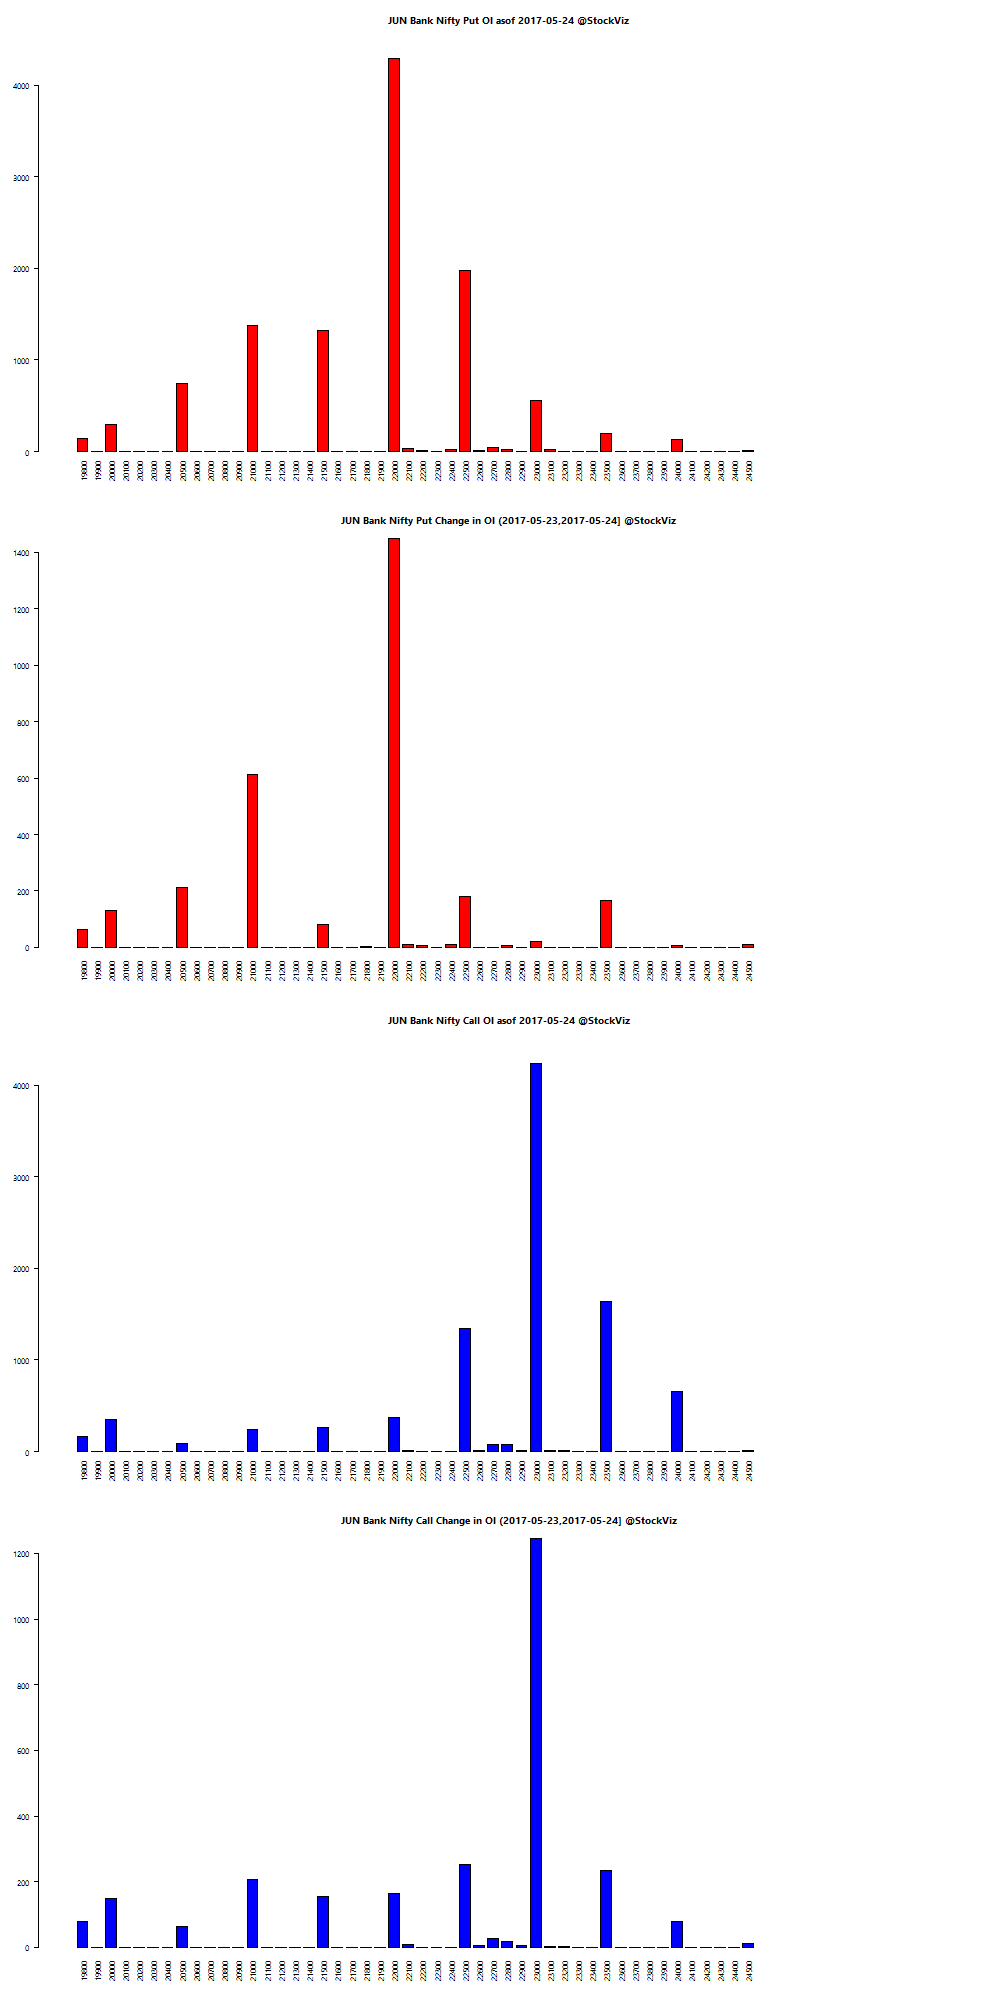 JUN BANKNIFTY OI chart